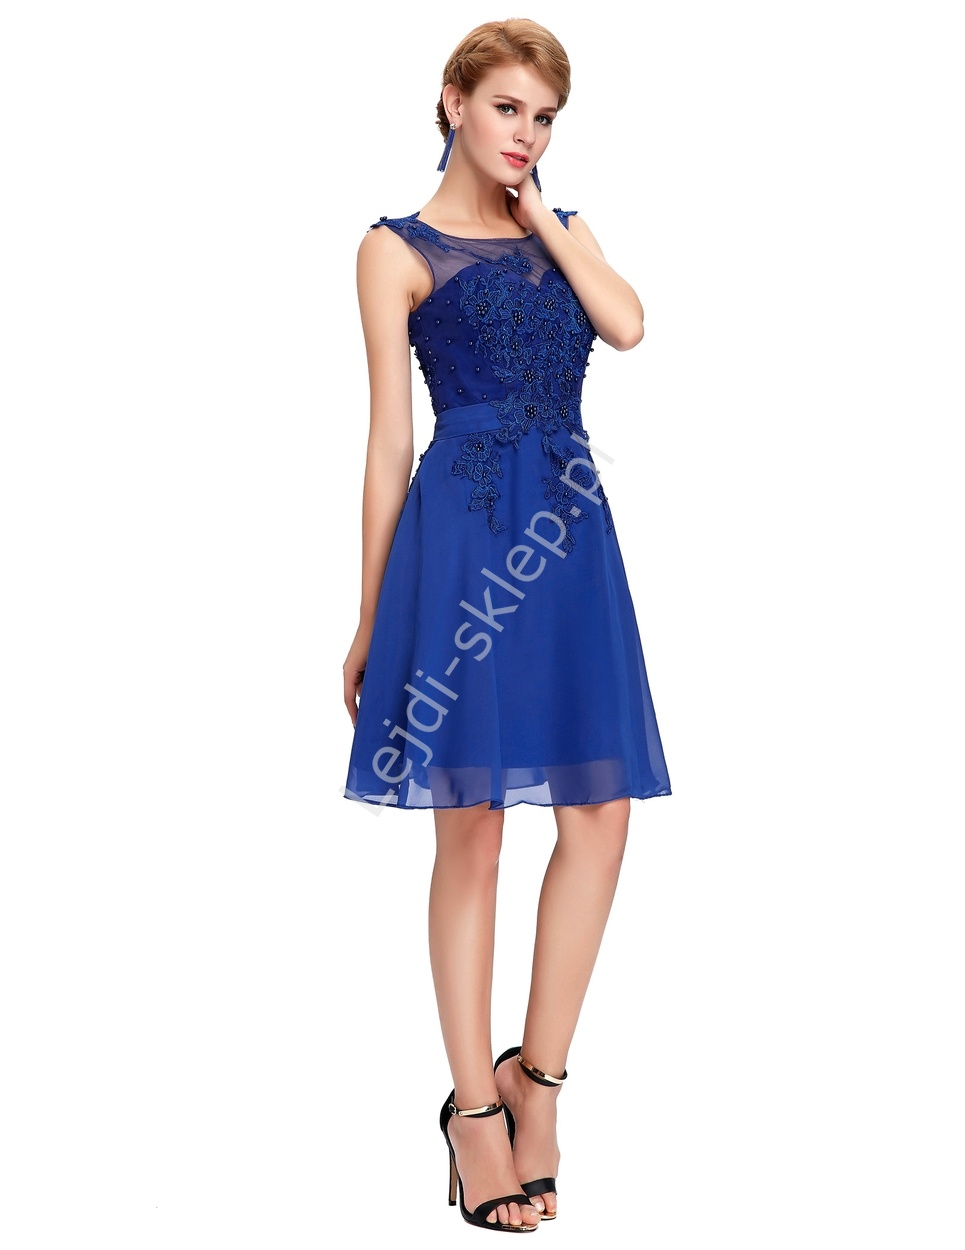 A light dress, made of % precious silk. It's laying wonderfully on the body, and thanks to the elastic highlights the waist. The advantage of the dress is that it can be loosened to achieve a perfect length.